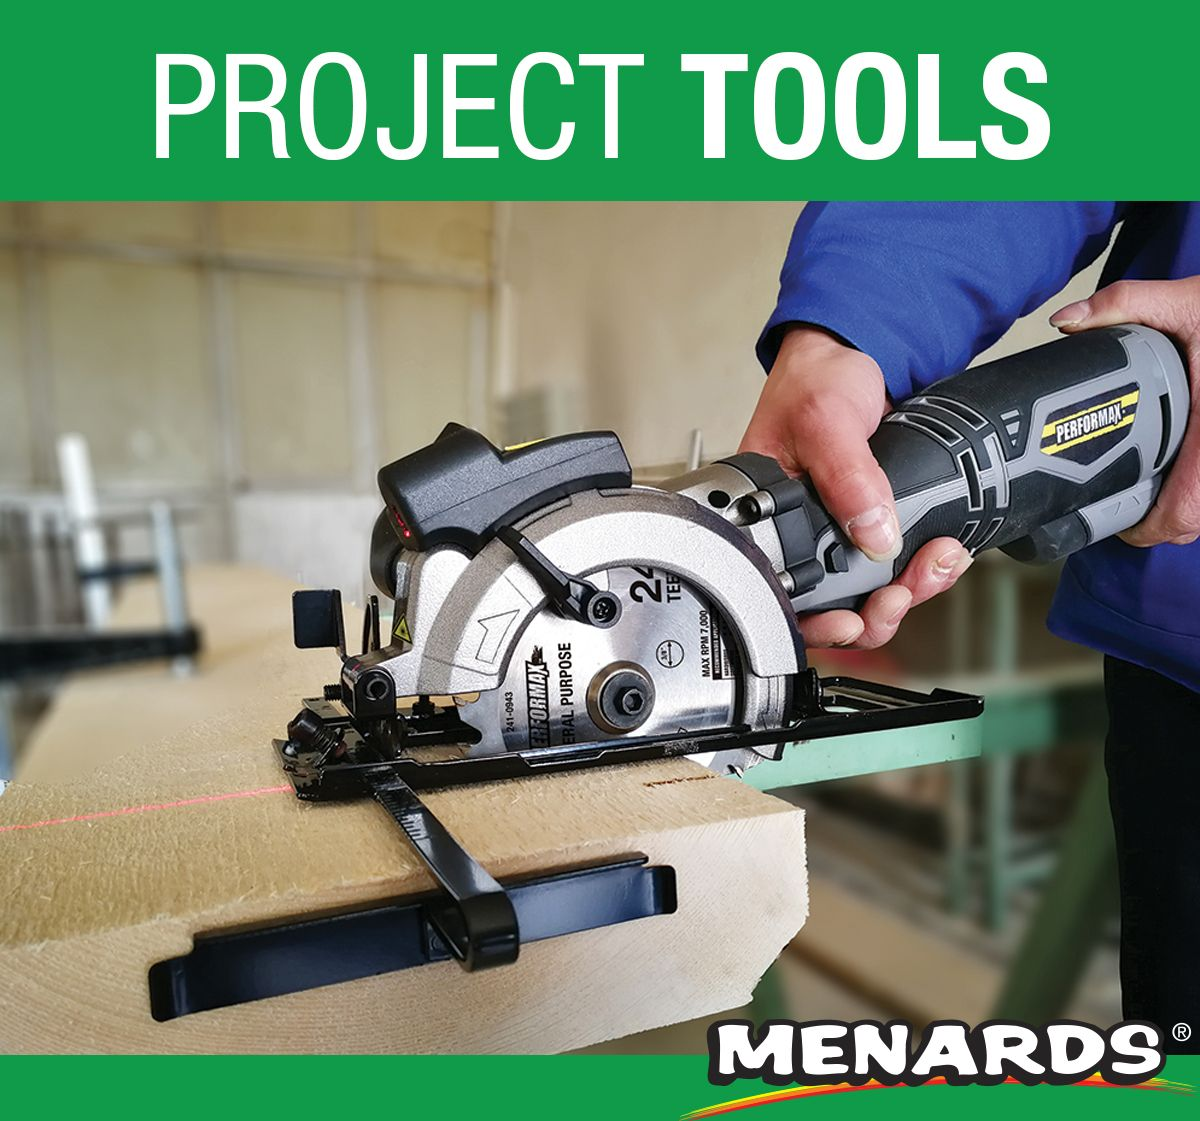 This 4 1 2 Compact Circular Saw Will Power Through Your Projects With Ease The Compact Size Is Excellent Compact Circular Saw Best Circular Saw Circular Saw